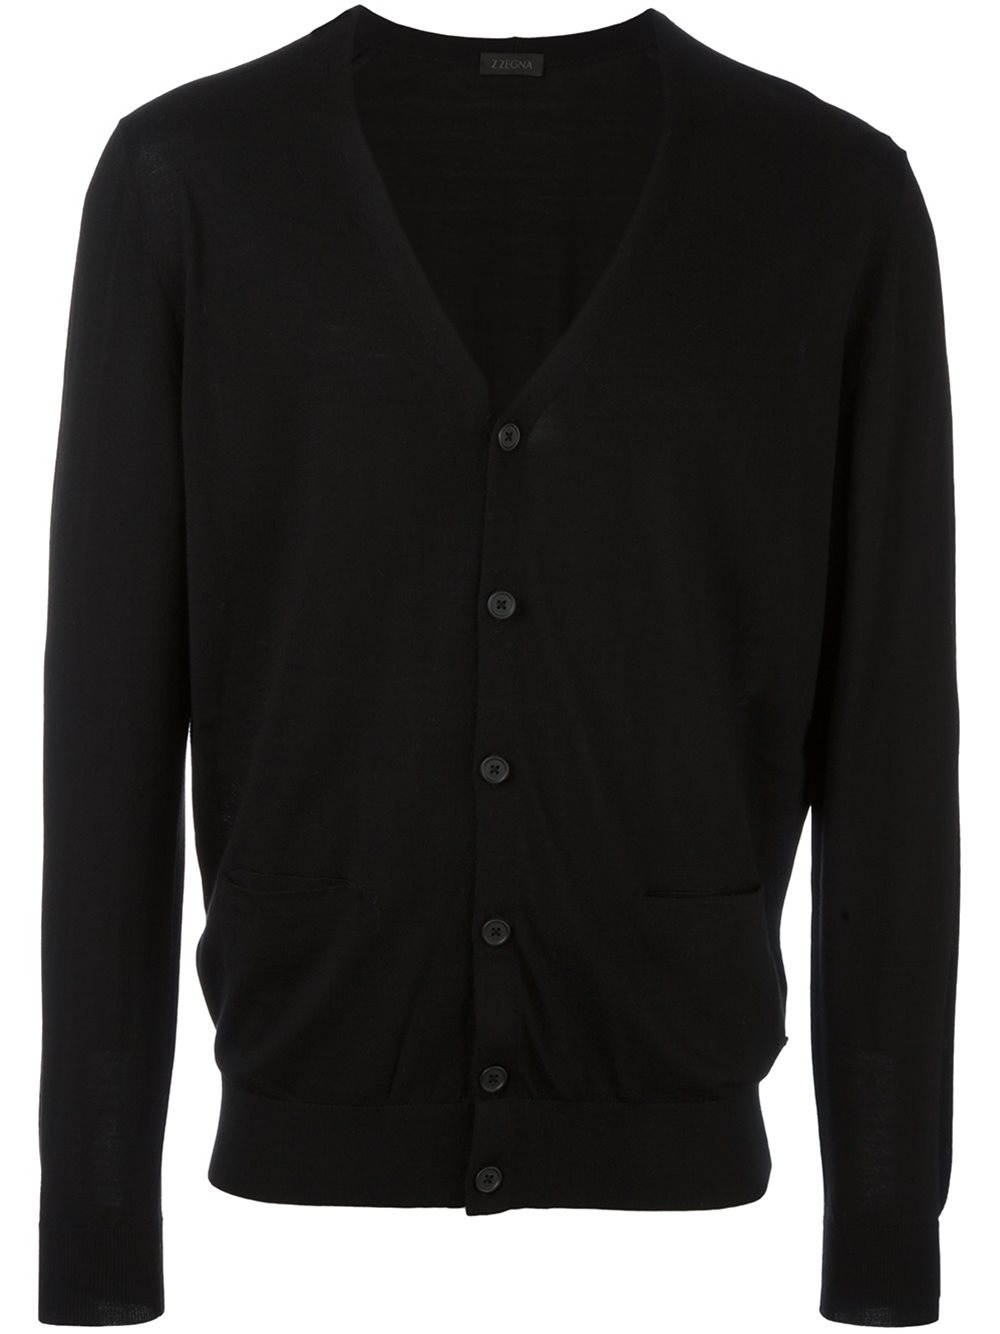 Buy low price, high quality black button sweater with worldwide shipping on taradsod.tk